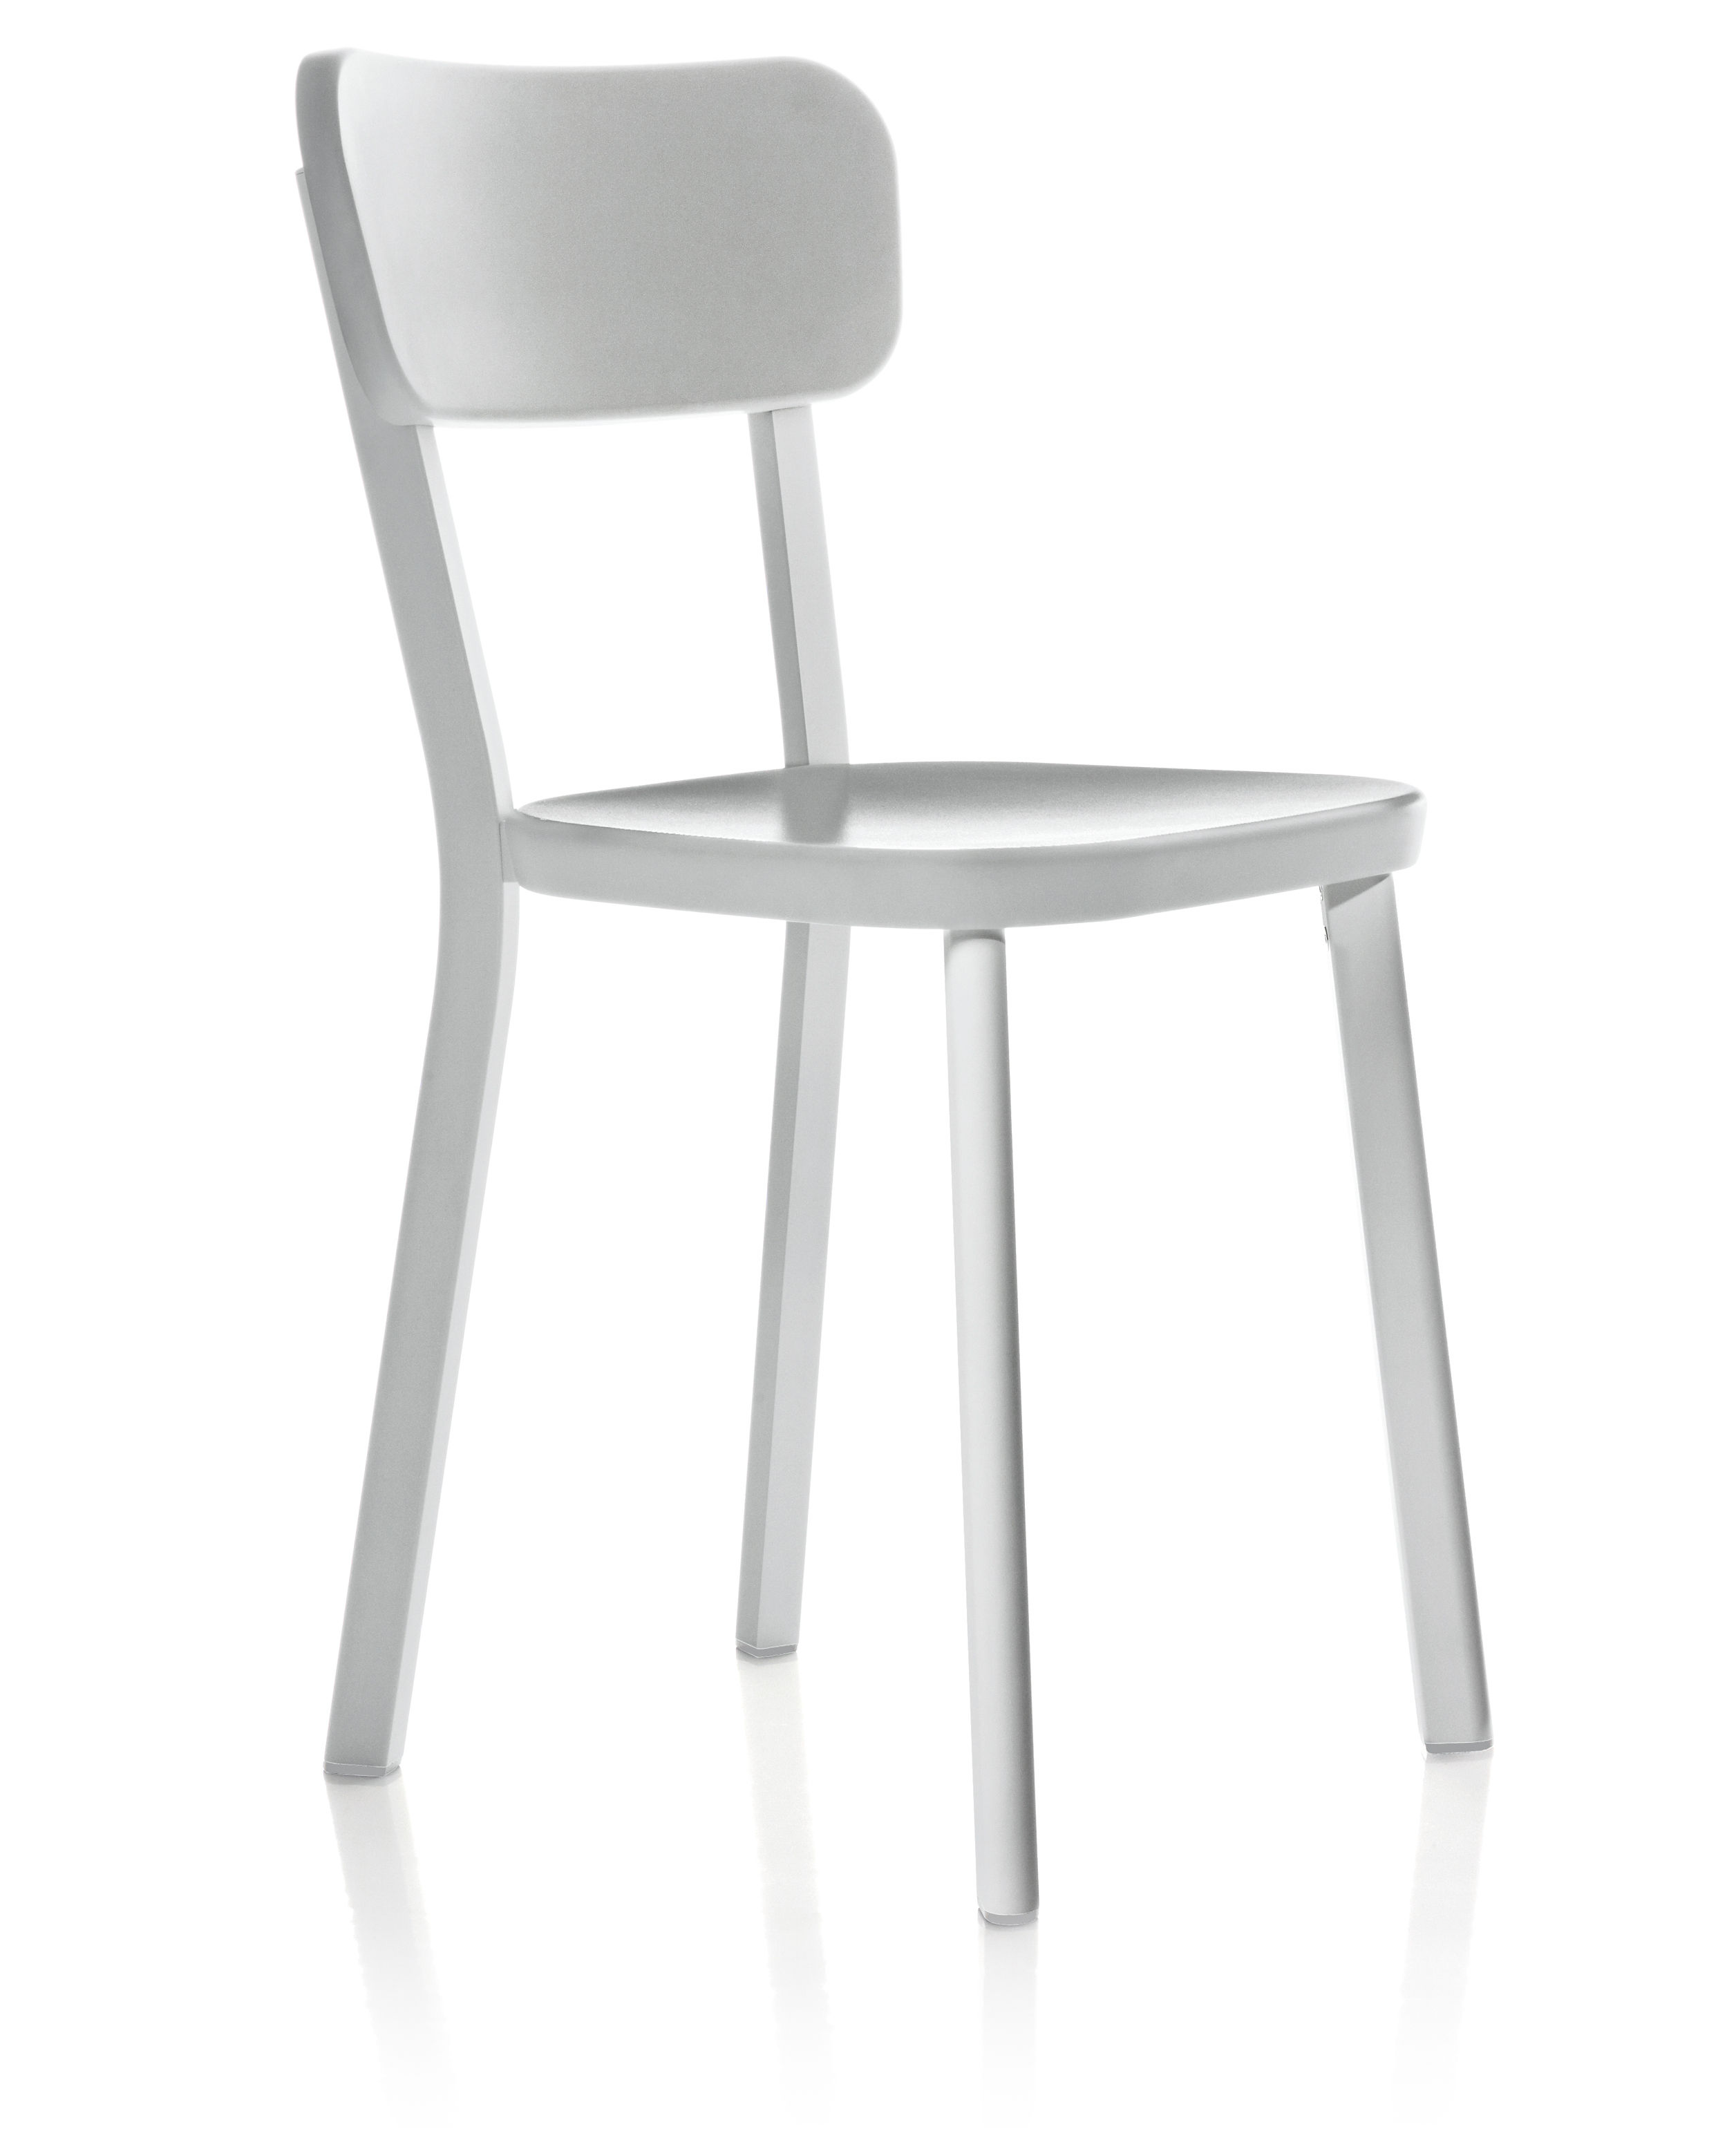 wanders modernism seating for chair italy magis items by sparkling furniture chairs marcel of